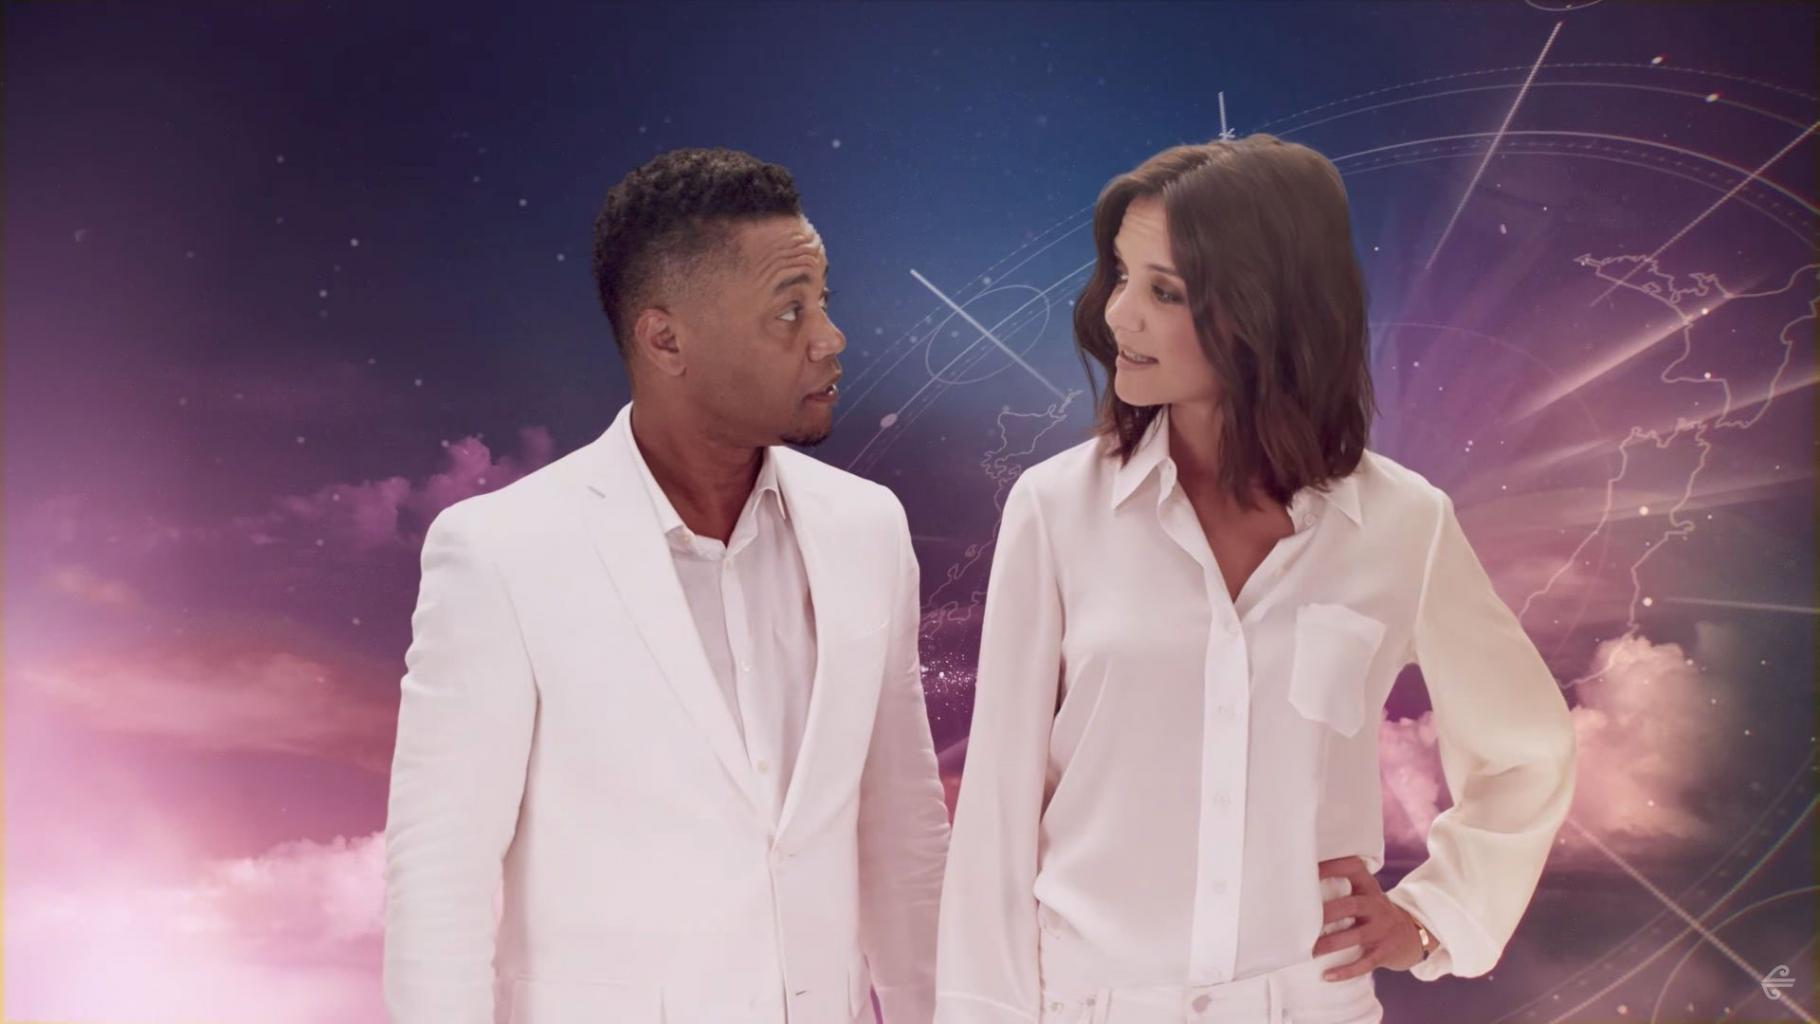 Katie Holmes and Cuba Gooding Jr. Are the Stars of a Super Chill New In-Flight Safety Video